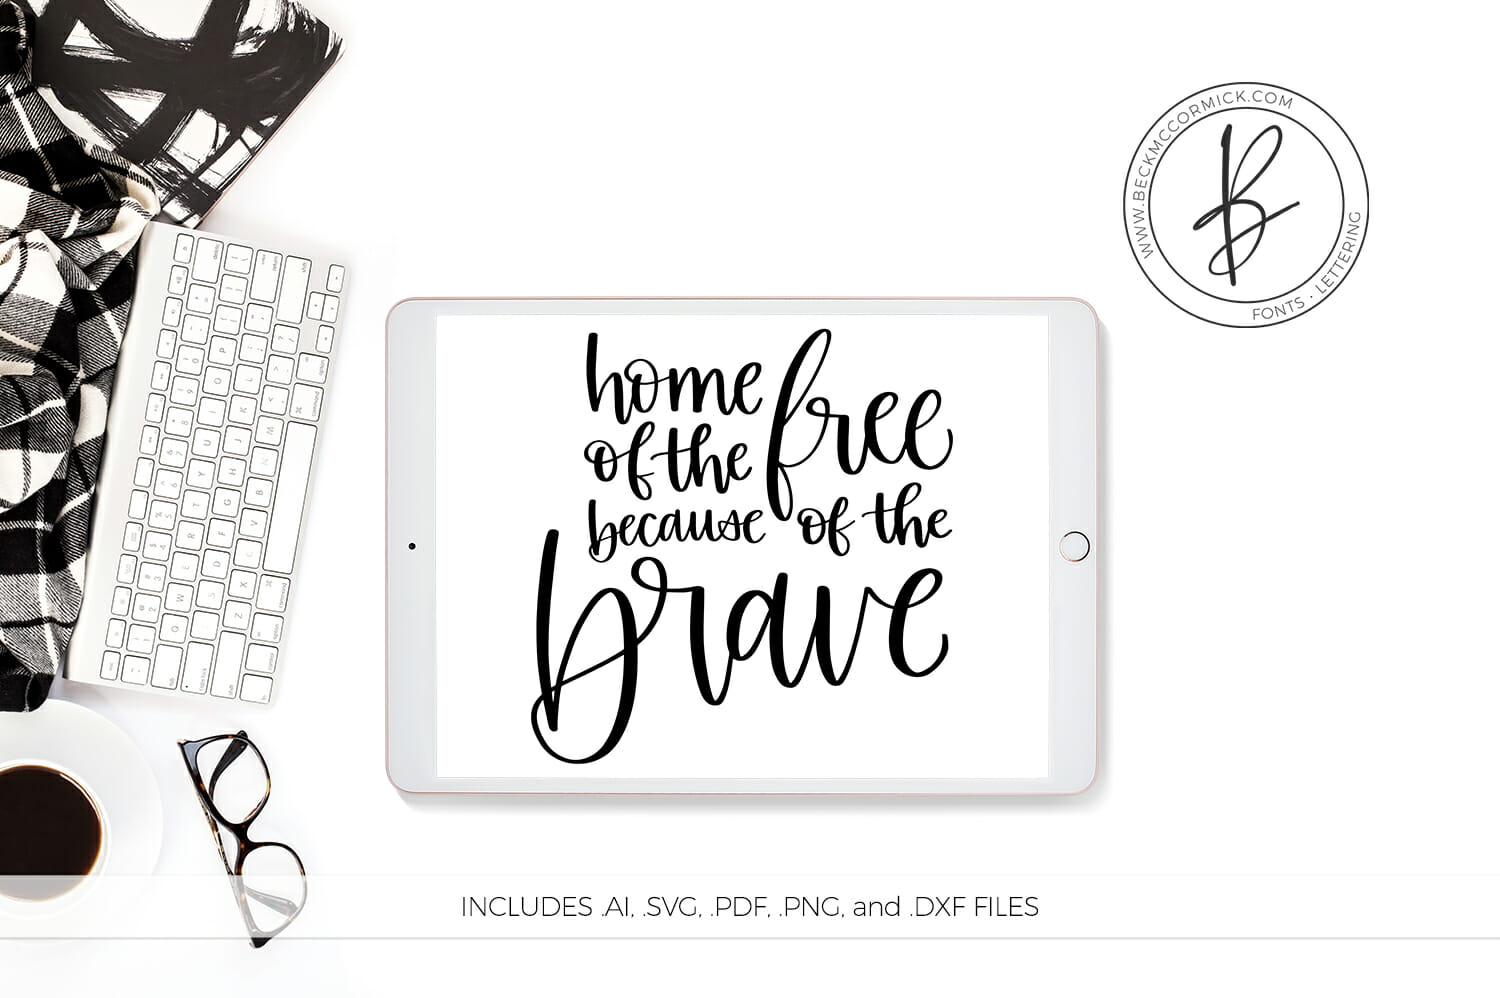 Home Of The Free Because Of The Brave Svg Military Svg Silhouette Cut File Instant Download For Cricut Instant Download Silhouette Beck Mccormick